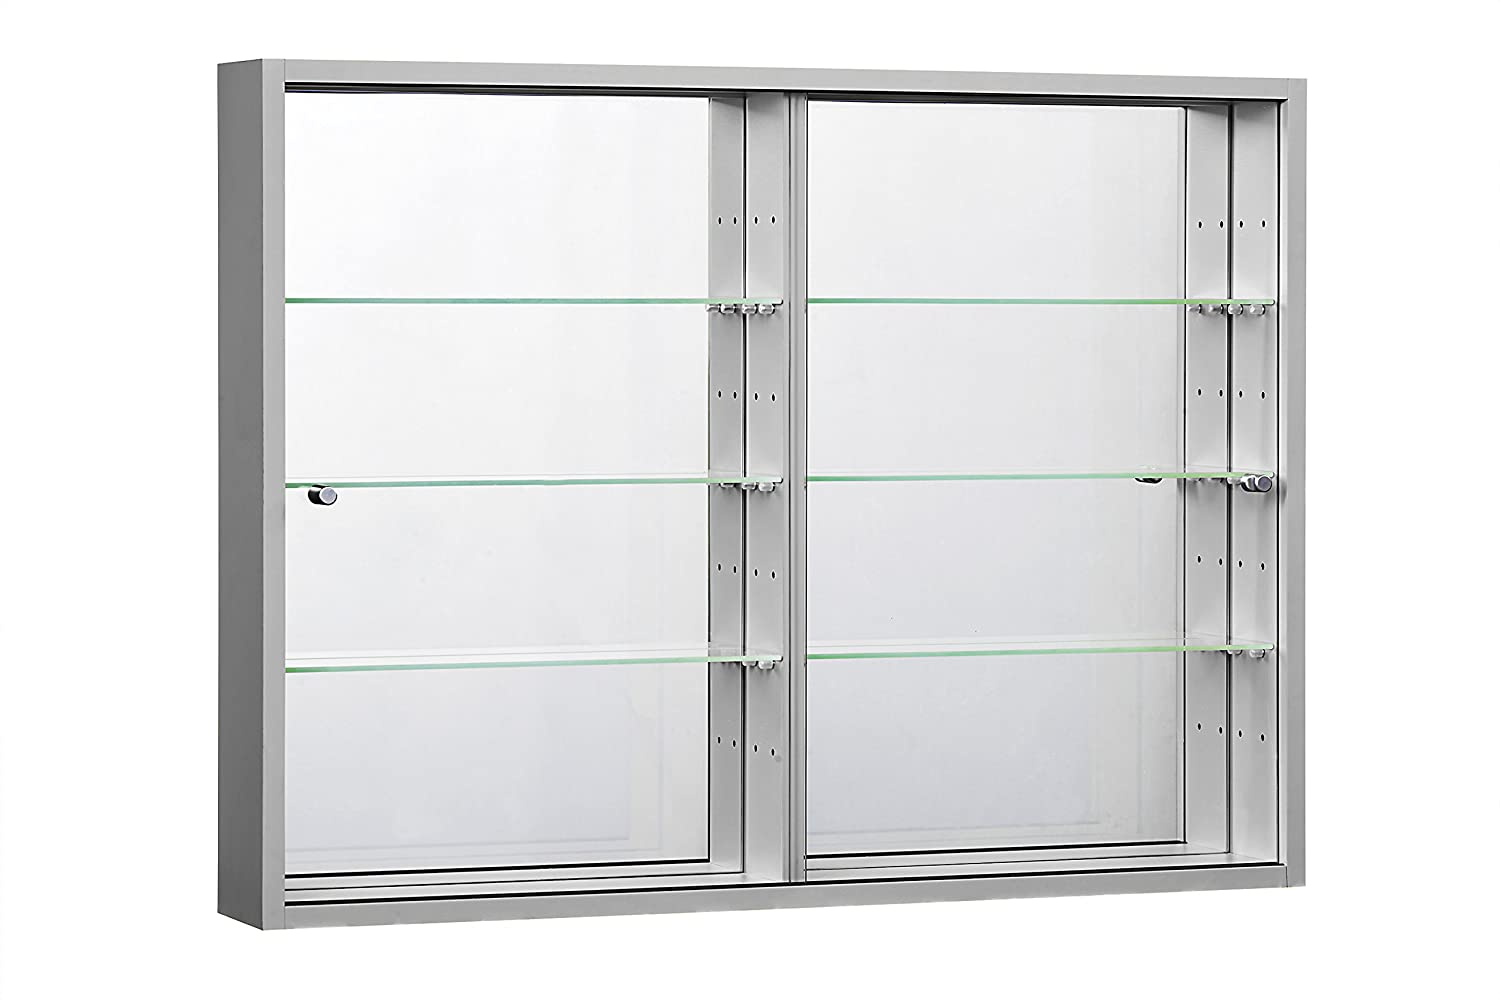 orbit plus wall mounted glass display cabinet with mirror back